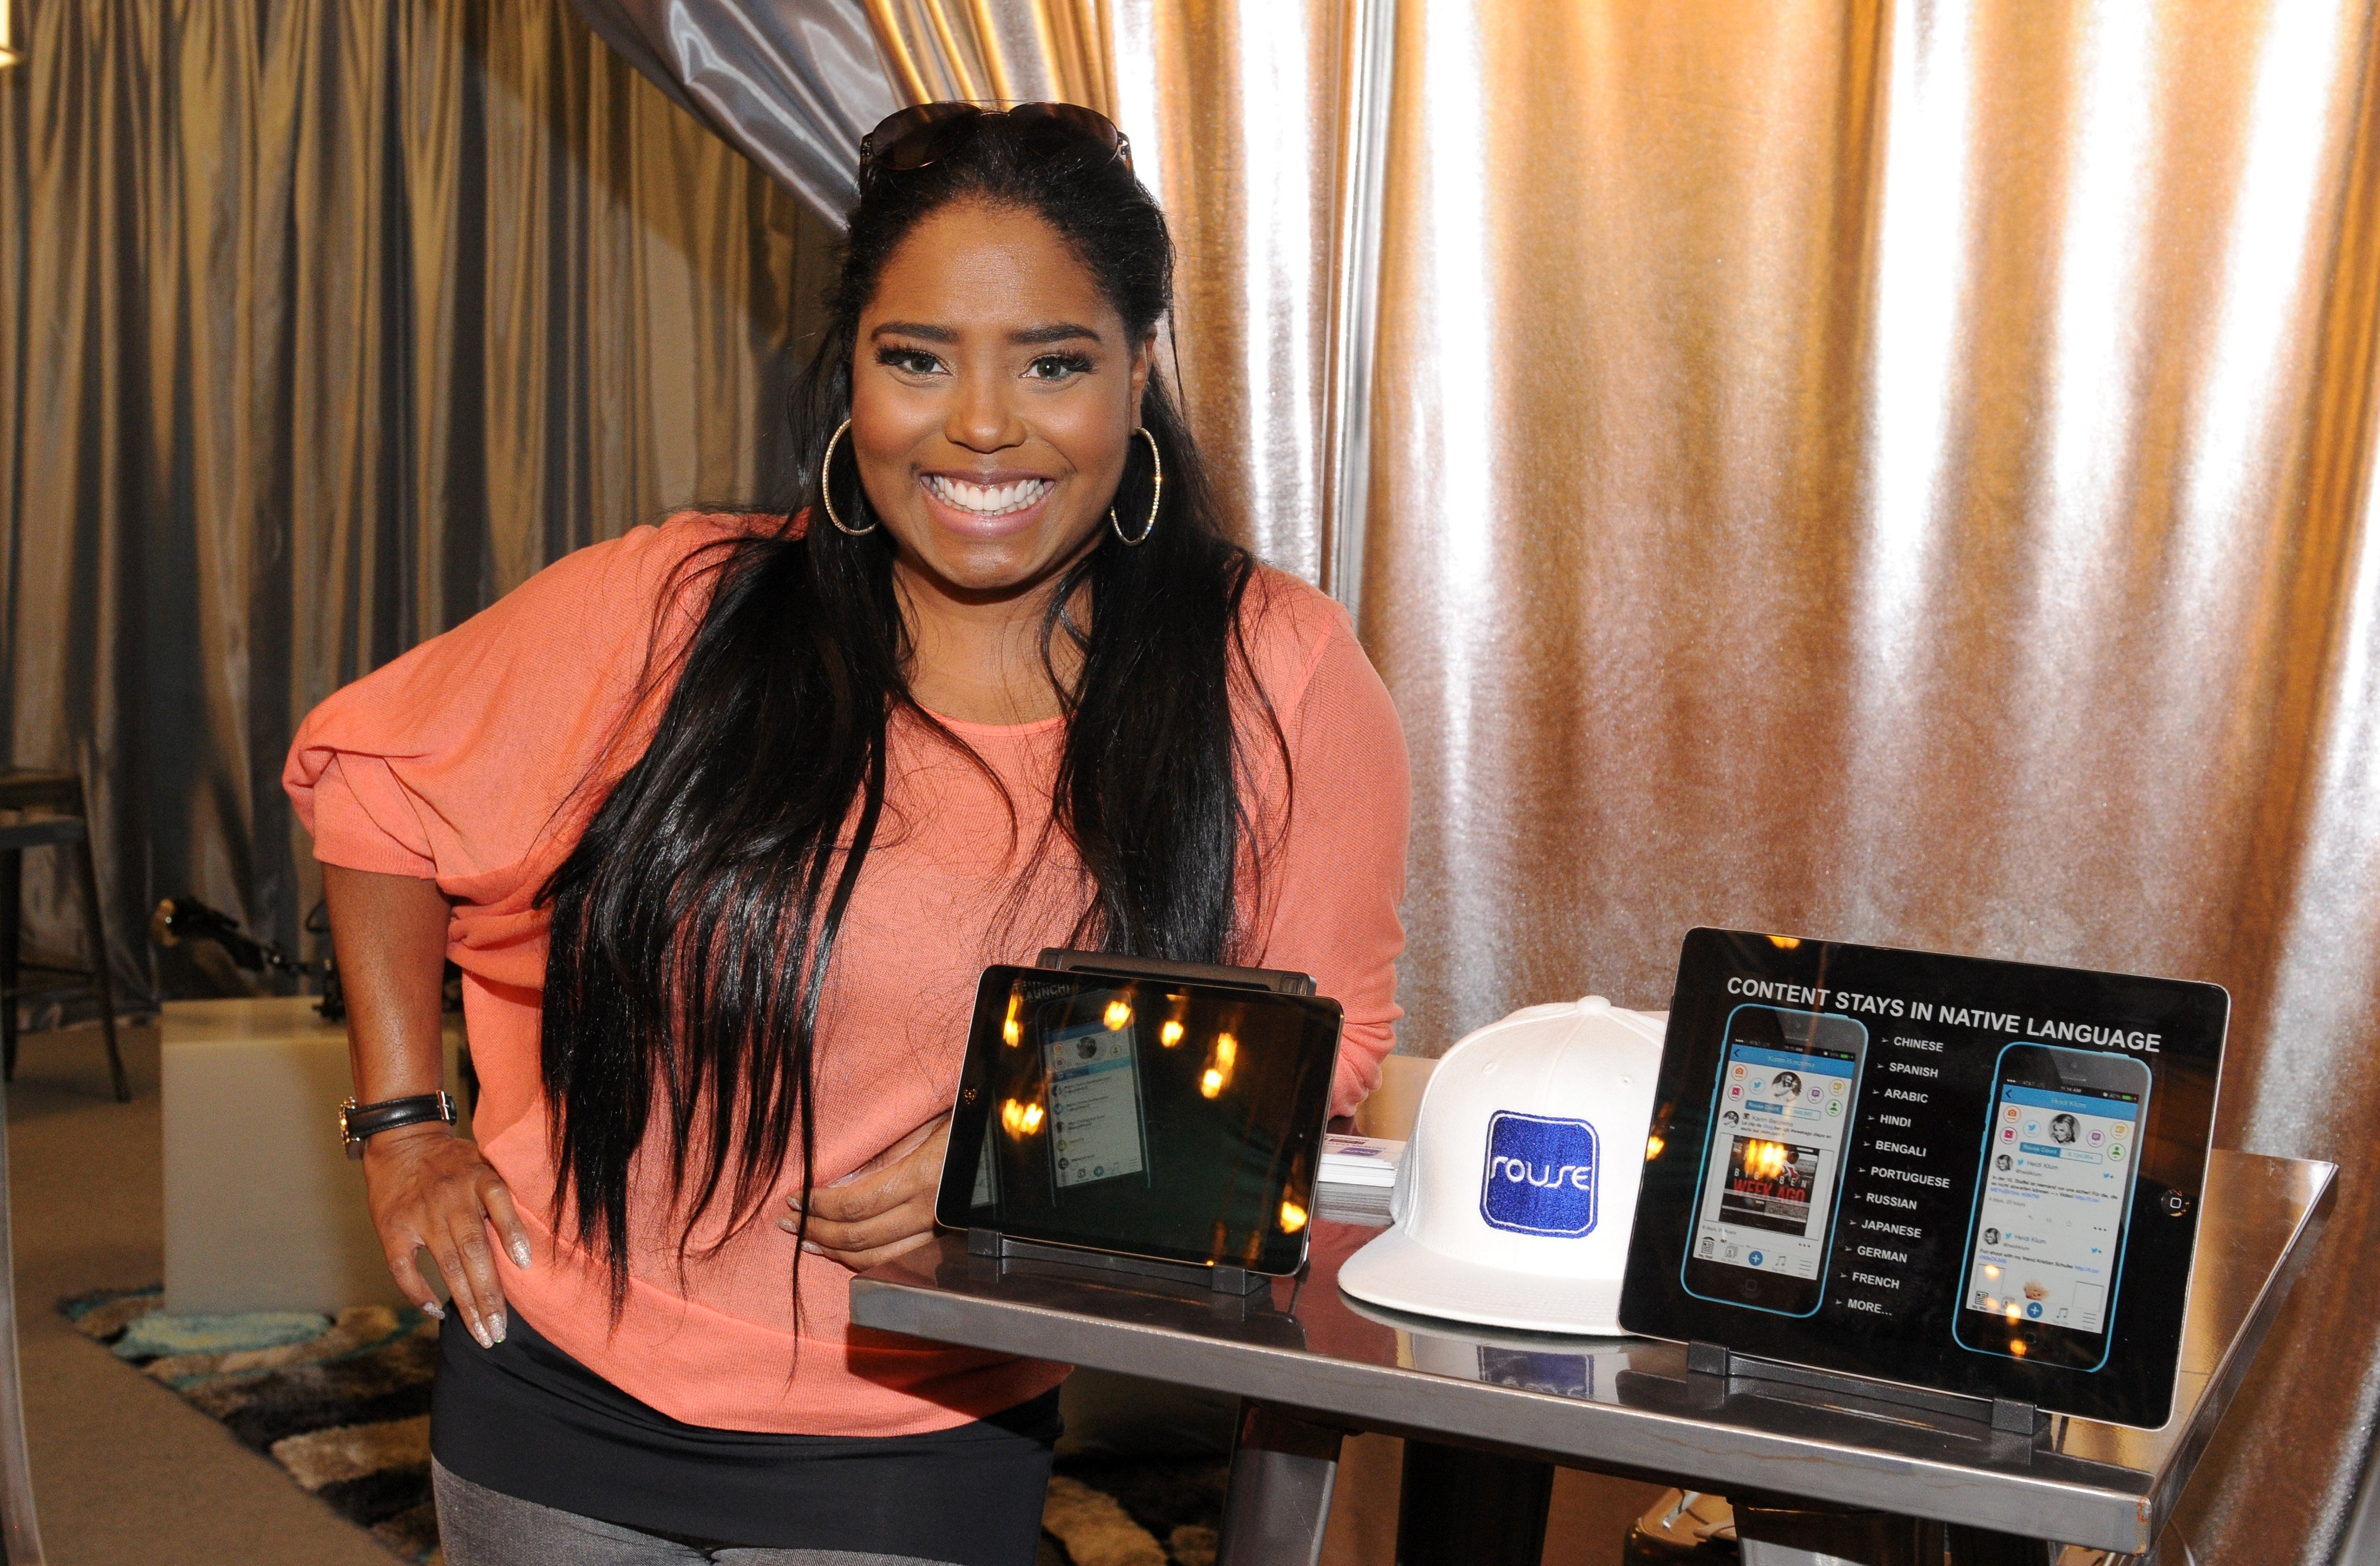 Shar Jackson attends the GRAMMY gift lounge during The 57th Annual GRAMMY Awards at the Staples Center on February 6, 2015 in Los Angeles, California | Photo: GettyImages